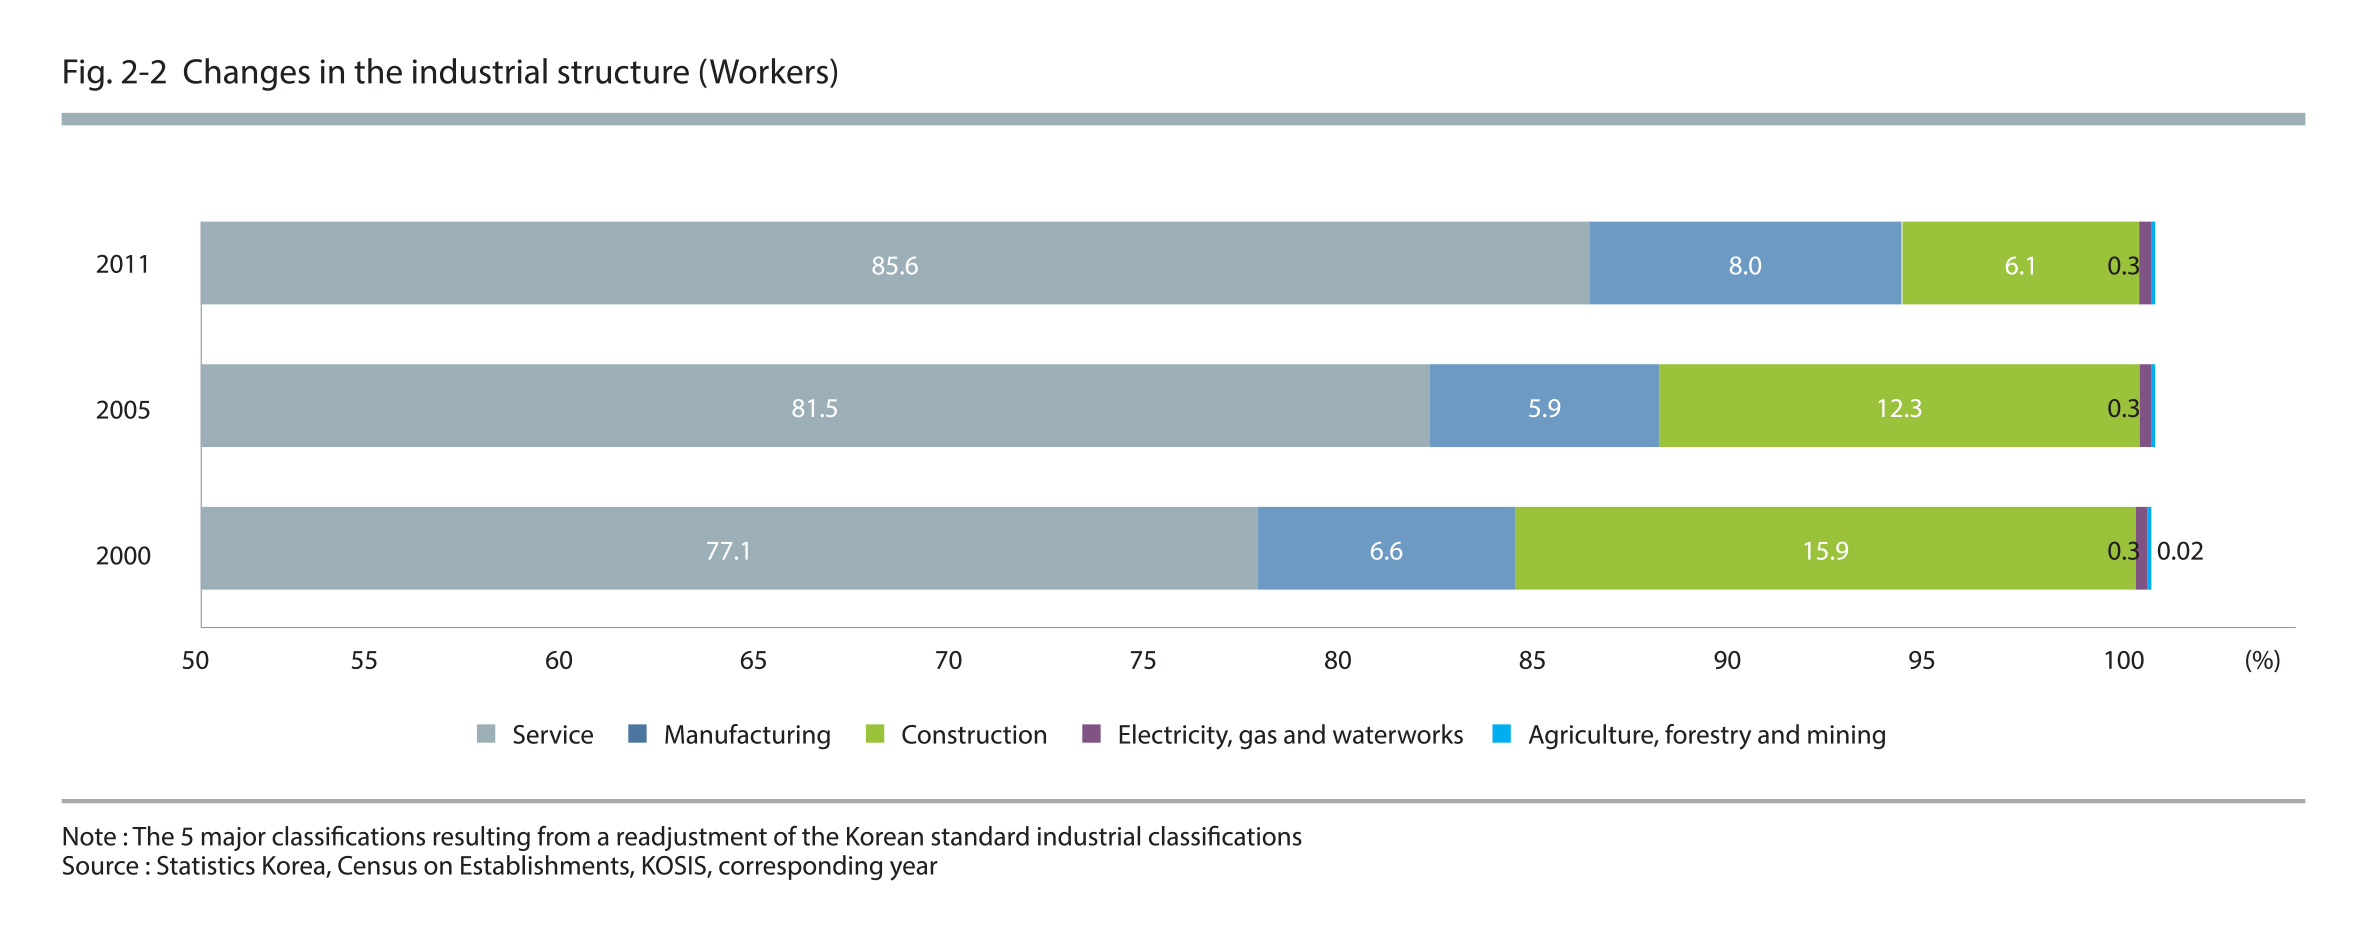 Changes in the industrial structure (Workers)